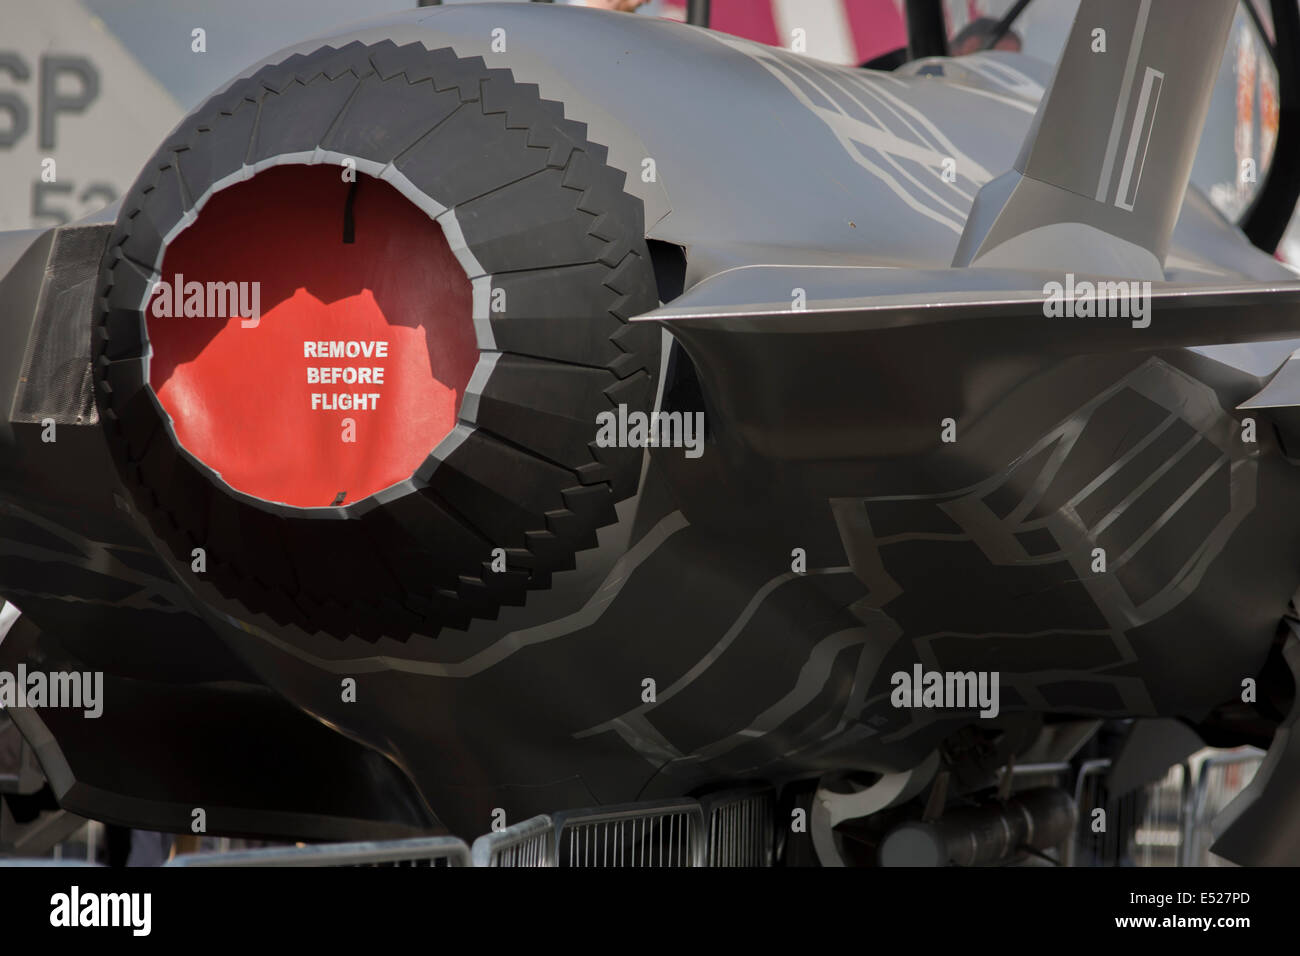 Lockheed-Martin stealth F-35 Joint Strike Fighter exhibited at the Farnborough Air Show, England. - Stock Image